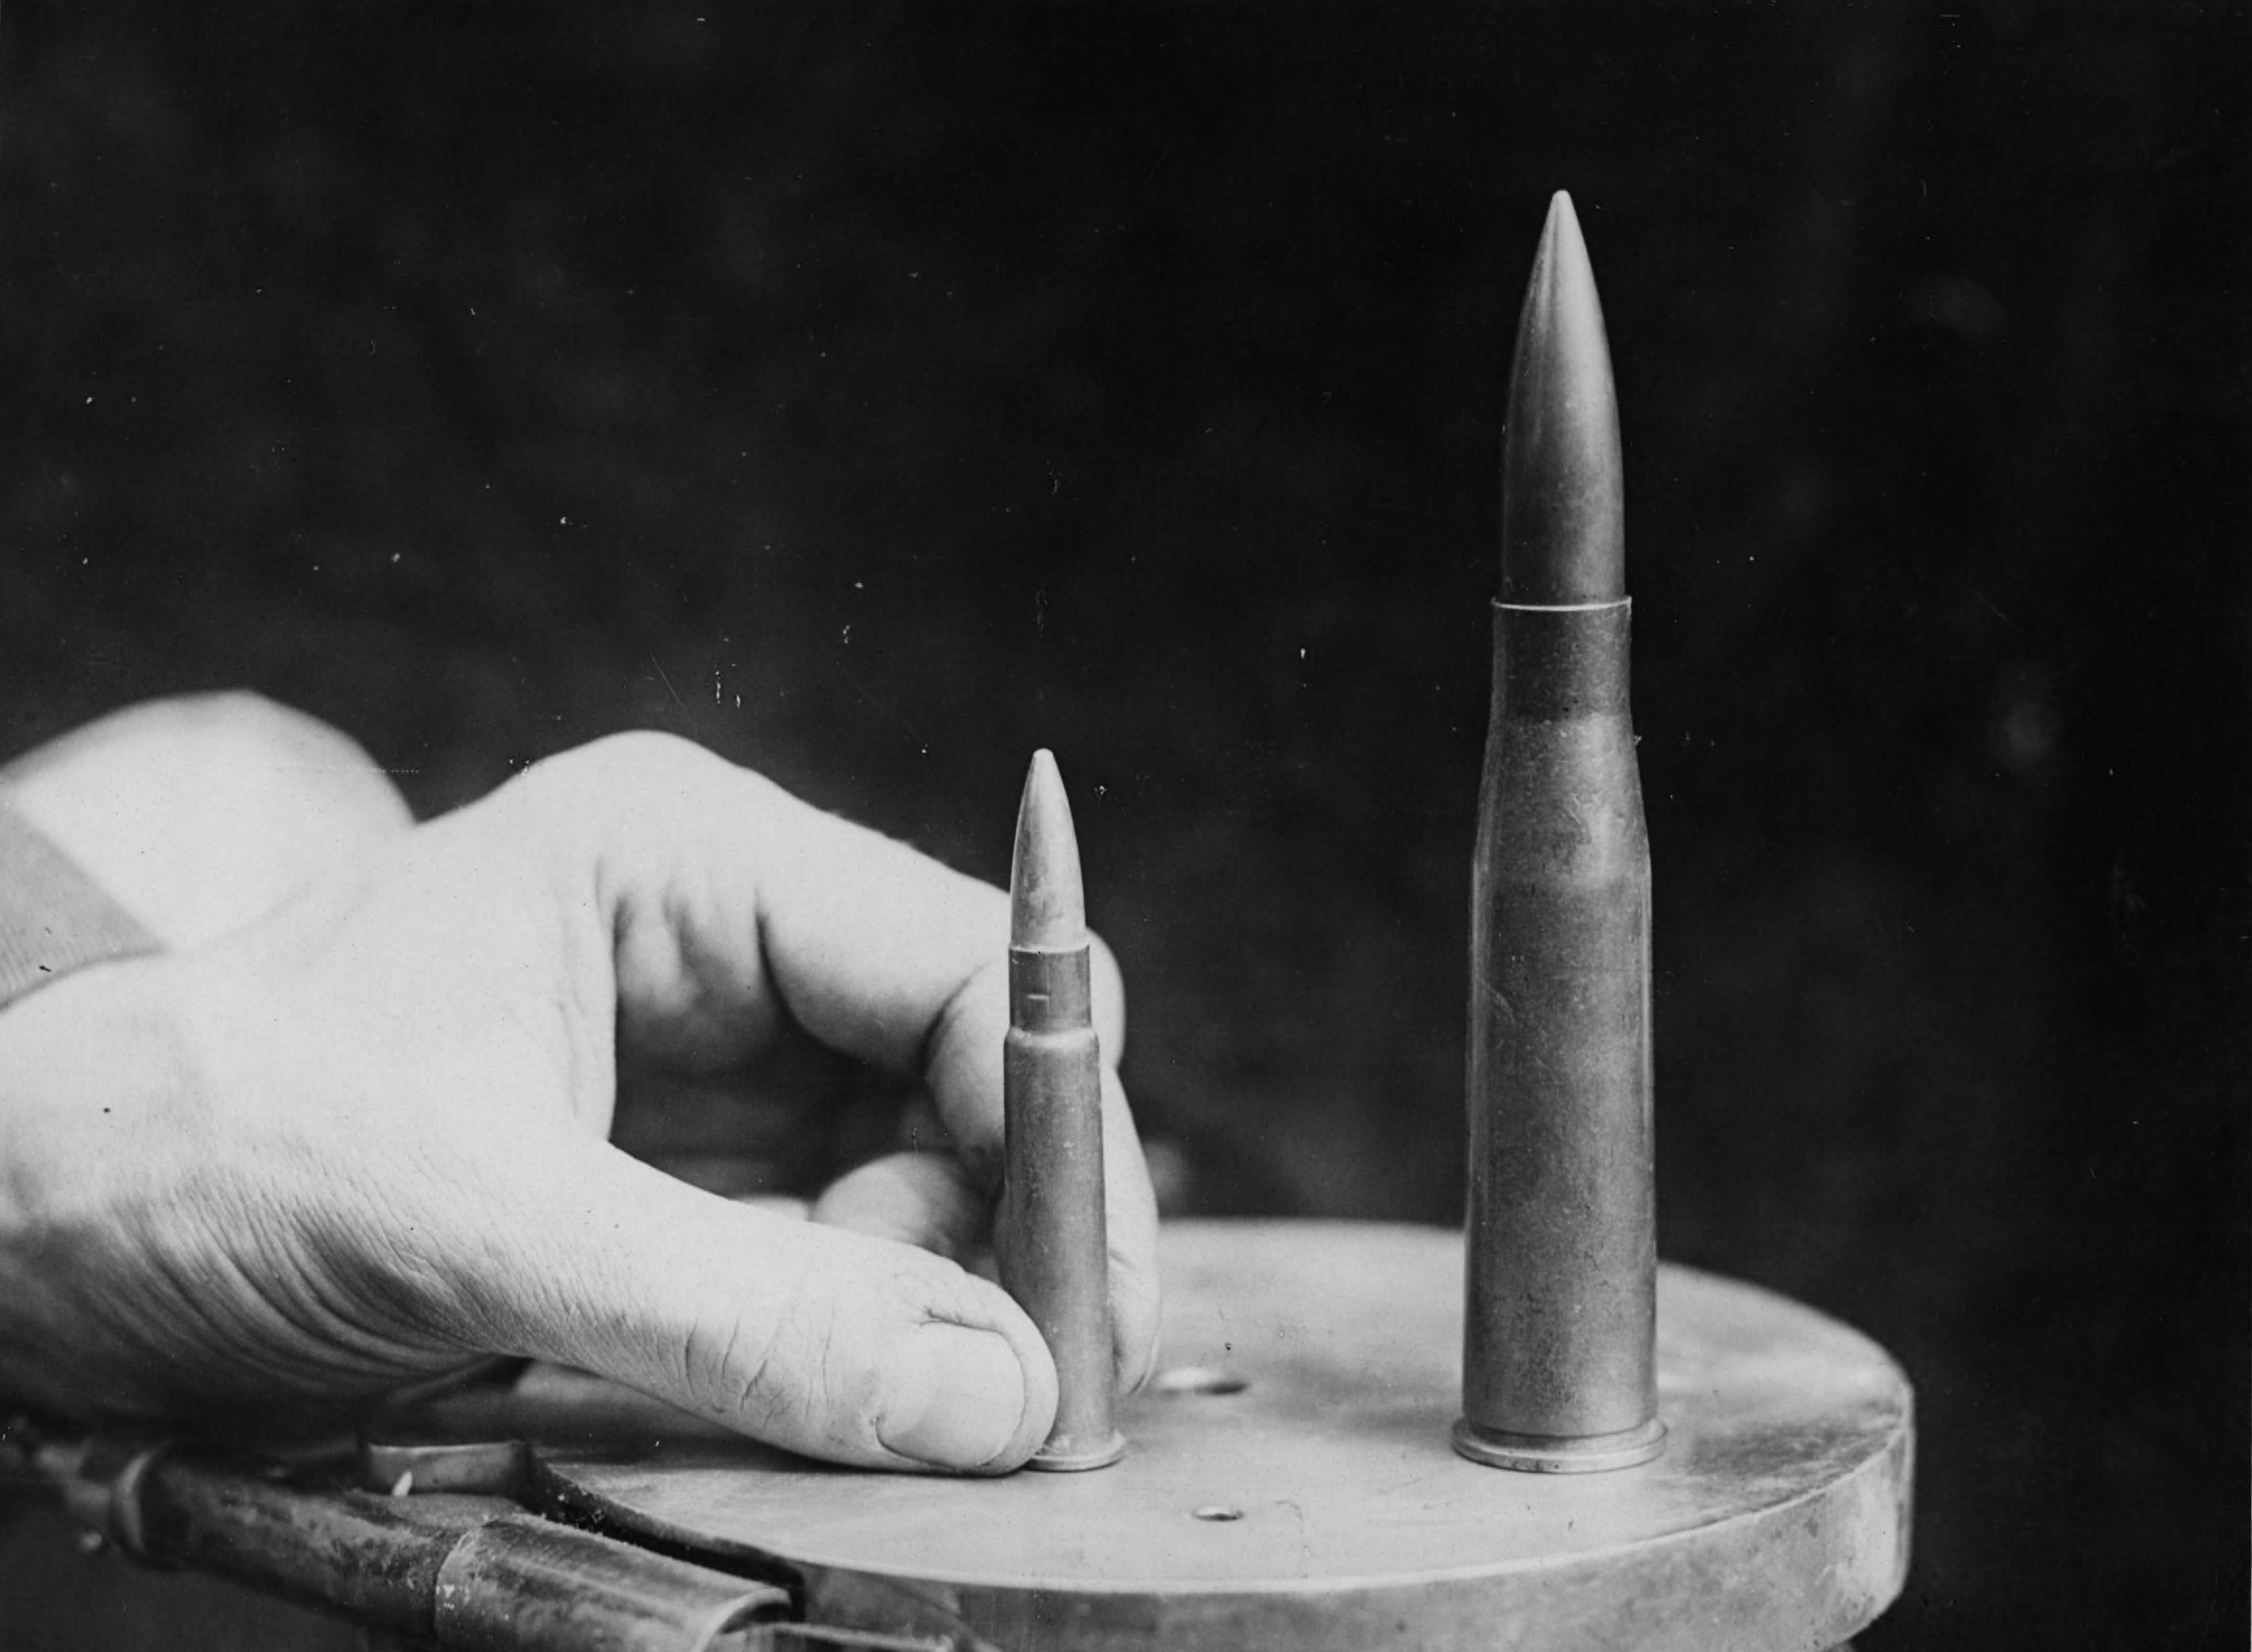 Comparison of a standard .303 British rifle cartridge and a 13.2 mm T-Gewehr cartridge.